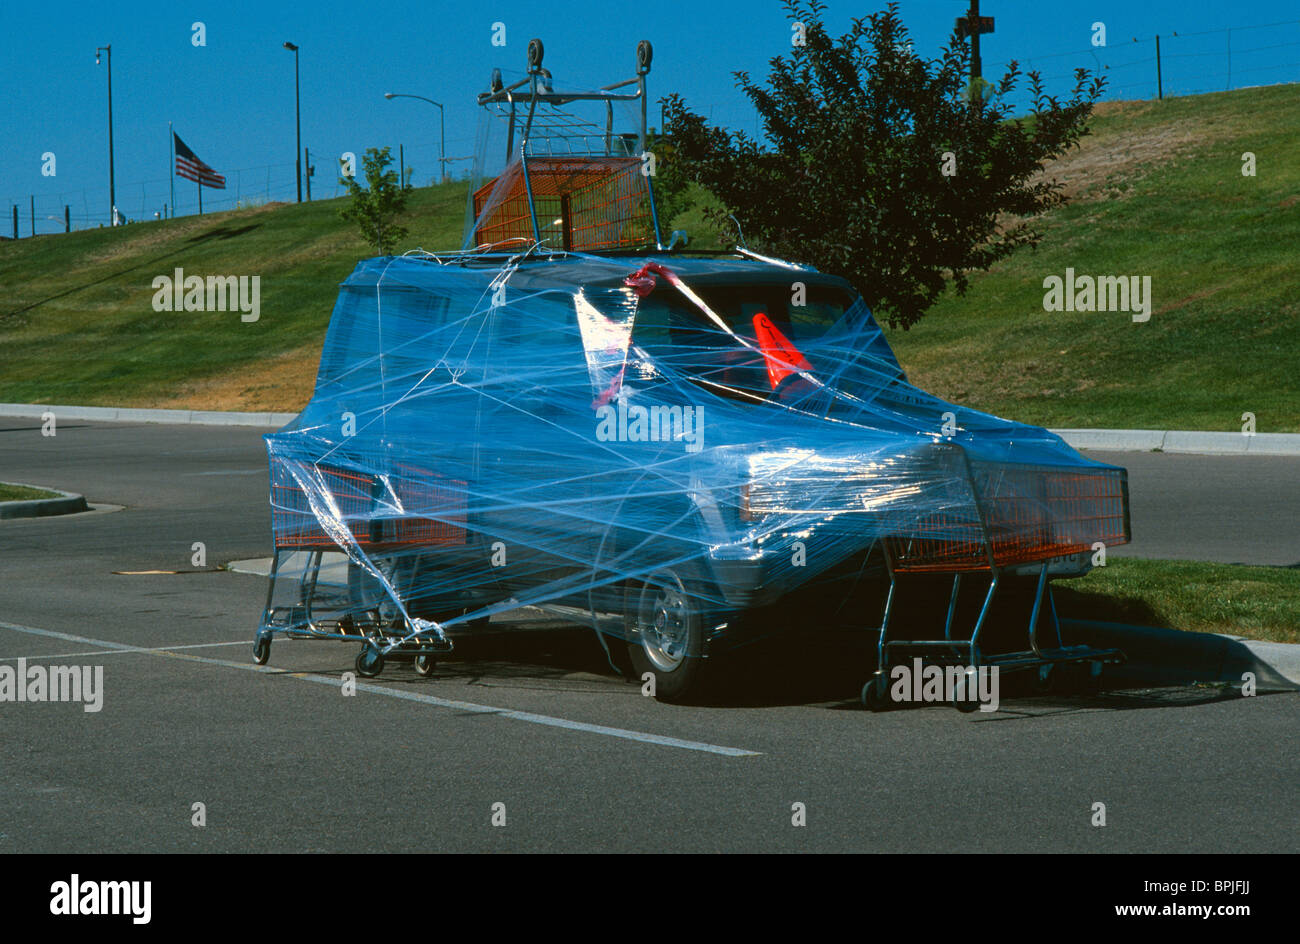 Practical joke. Car in parking lot wrapped with clear plastic. - Stock Image